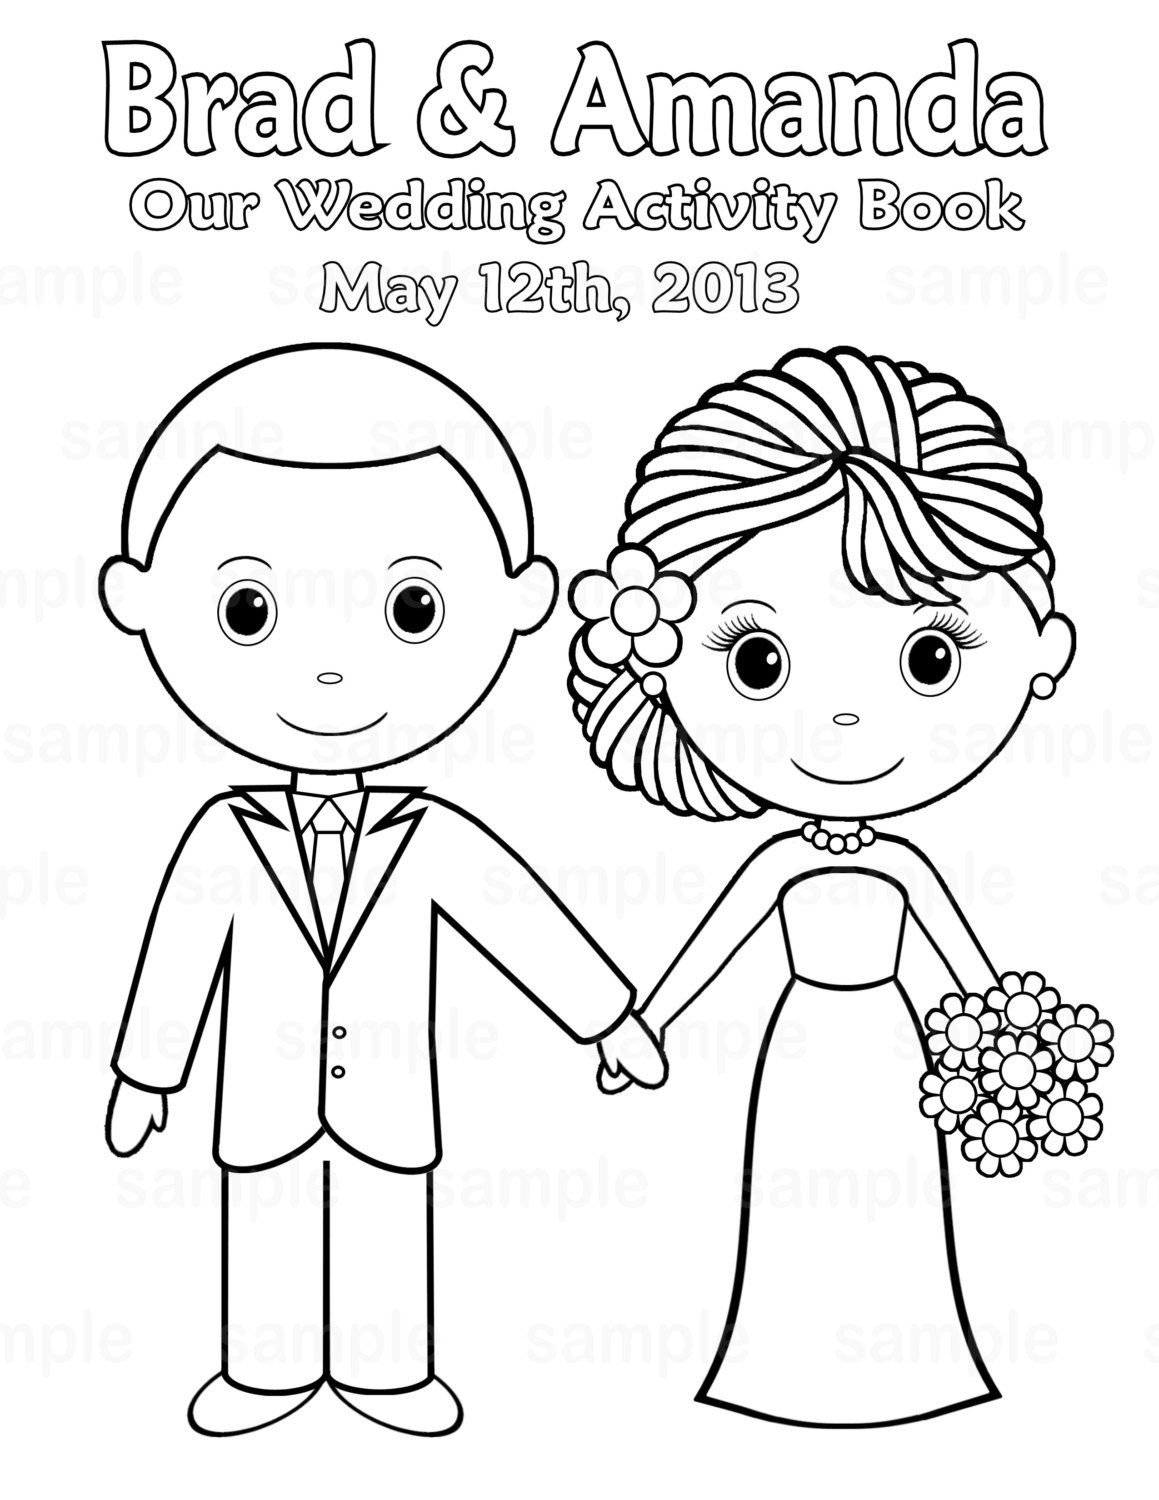 Printable Personalized Wedding Coloring Activity Book Favor Kids 8.5 - Free Printable Personalized Children's Books